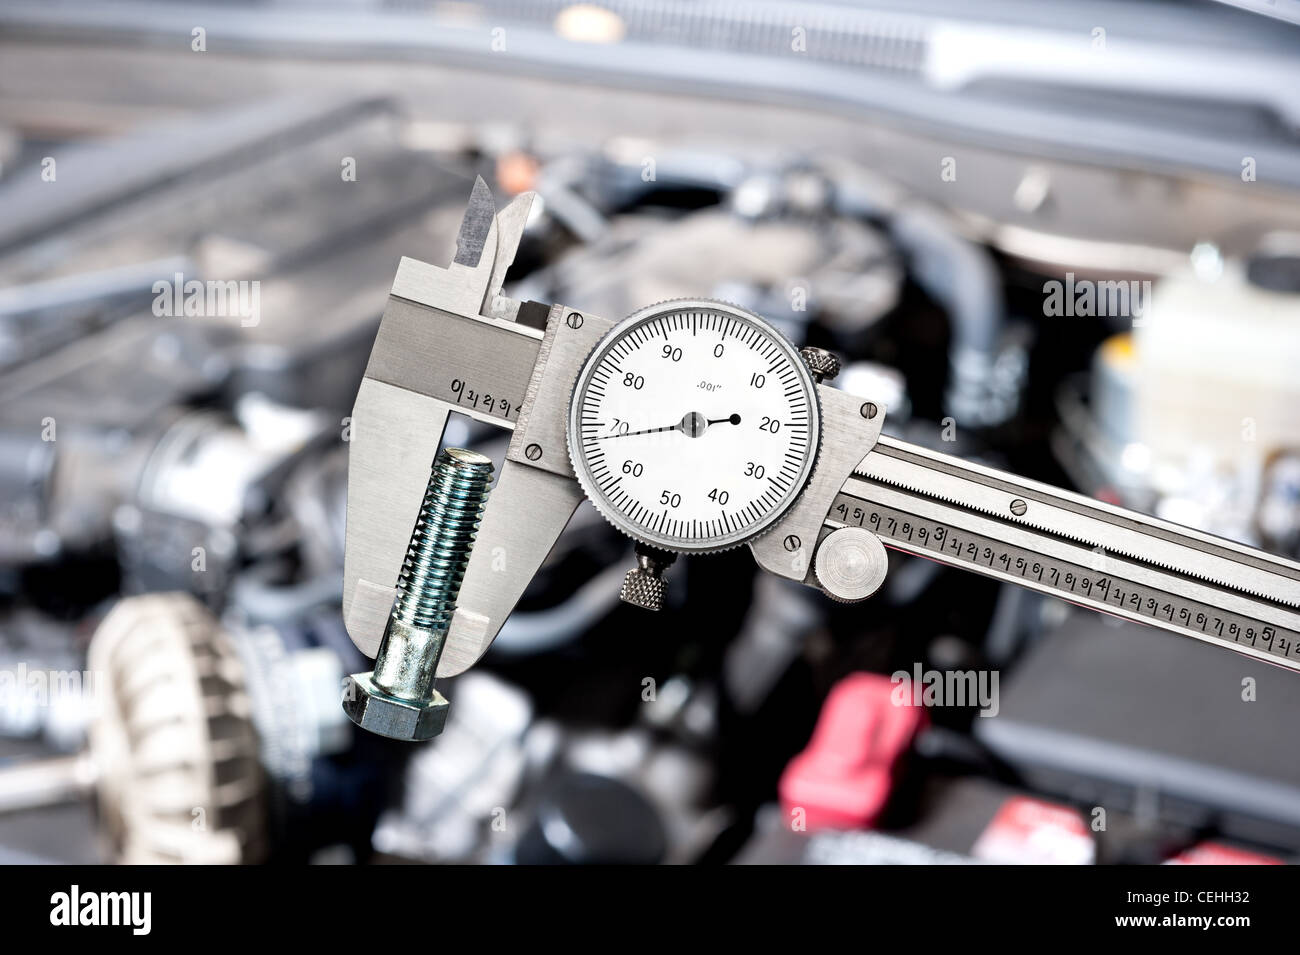 A shiny vernier caliper micrometer in front of a car engine during for servicing and repair - Stock Image